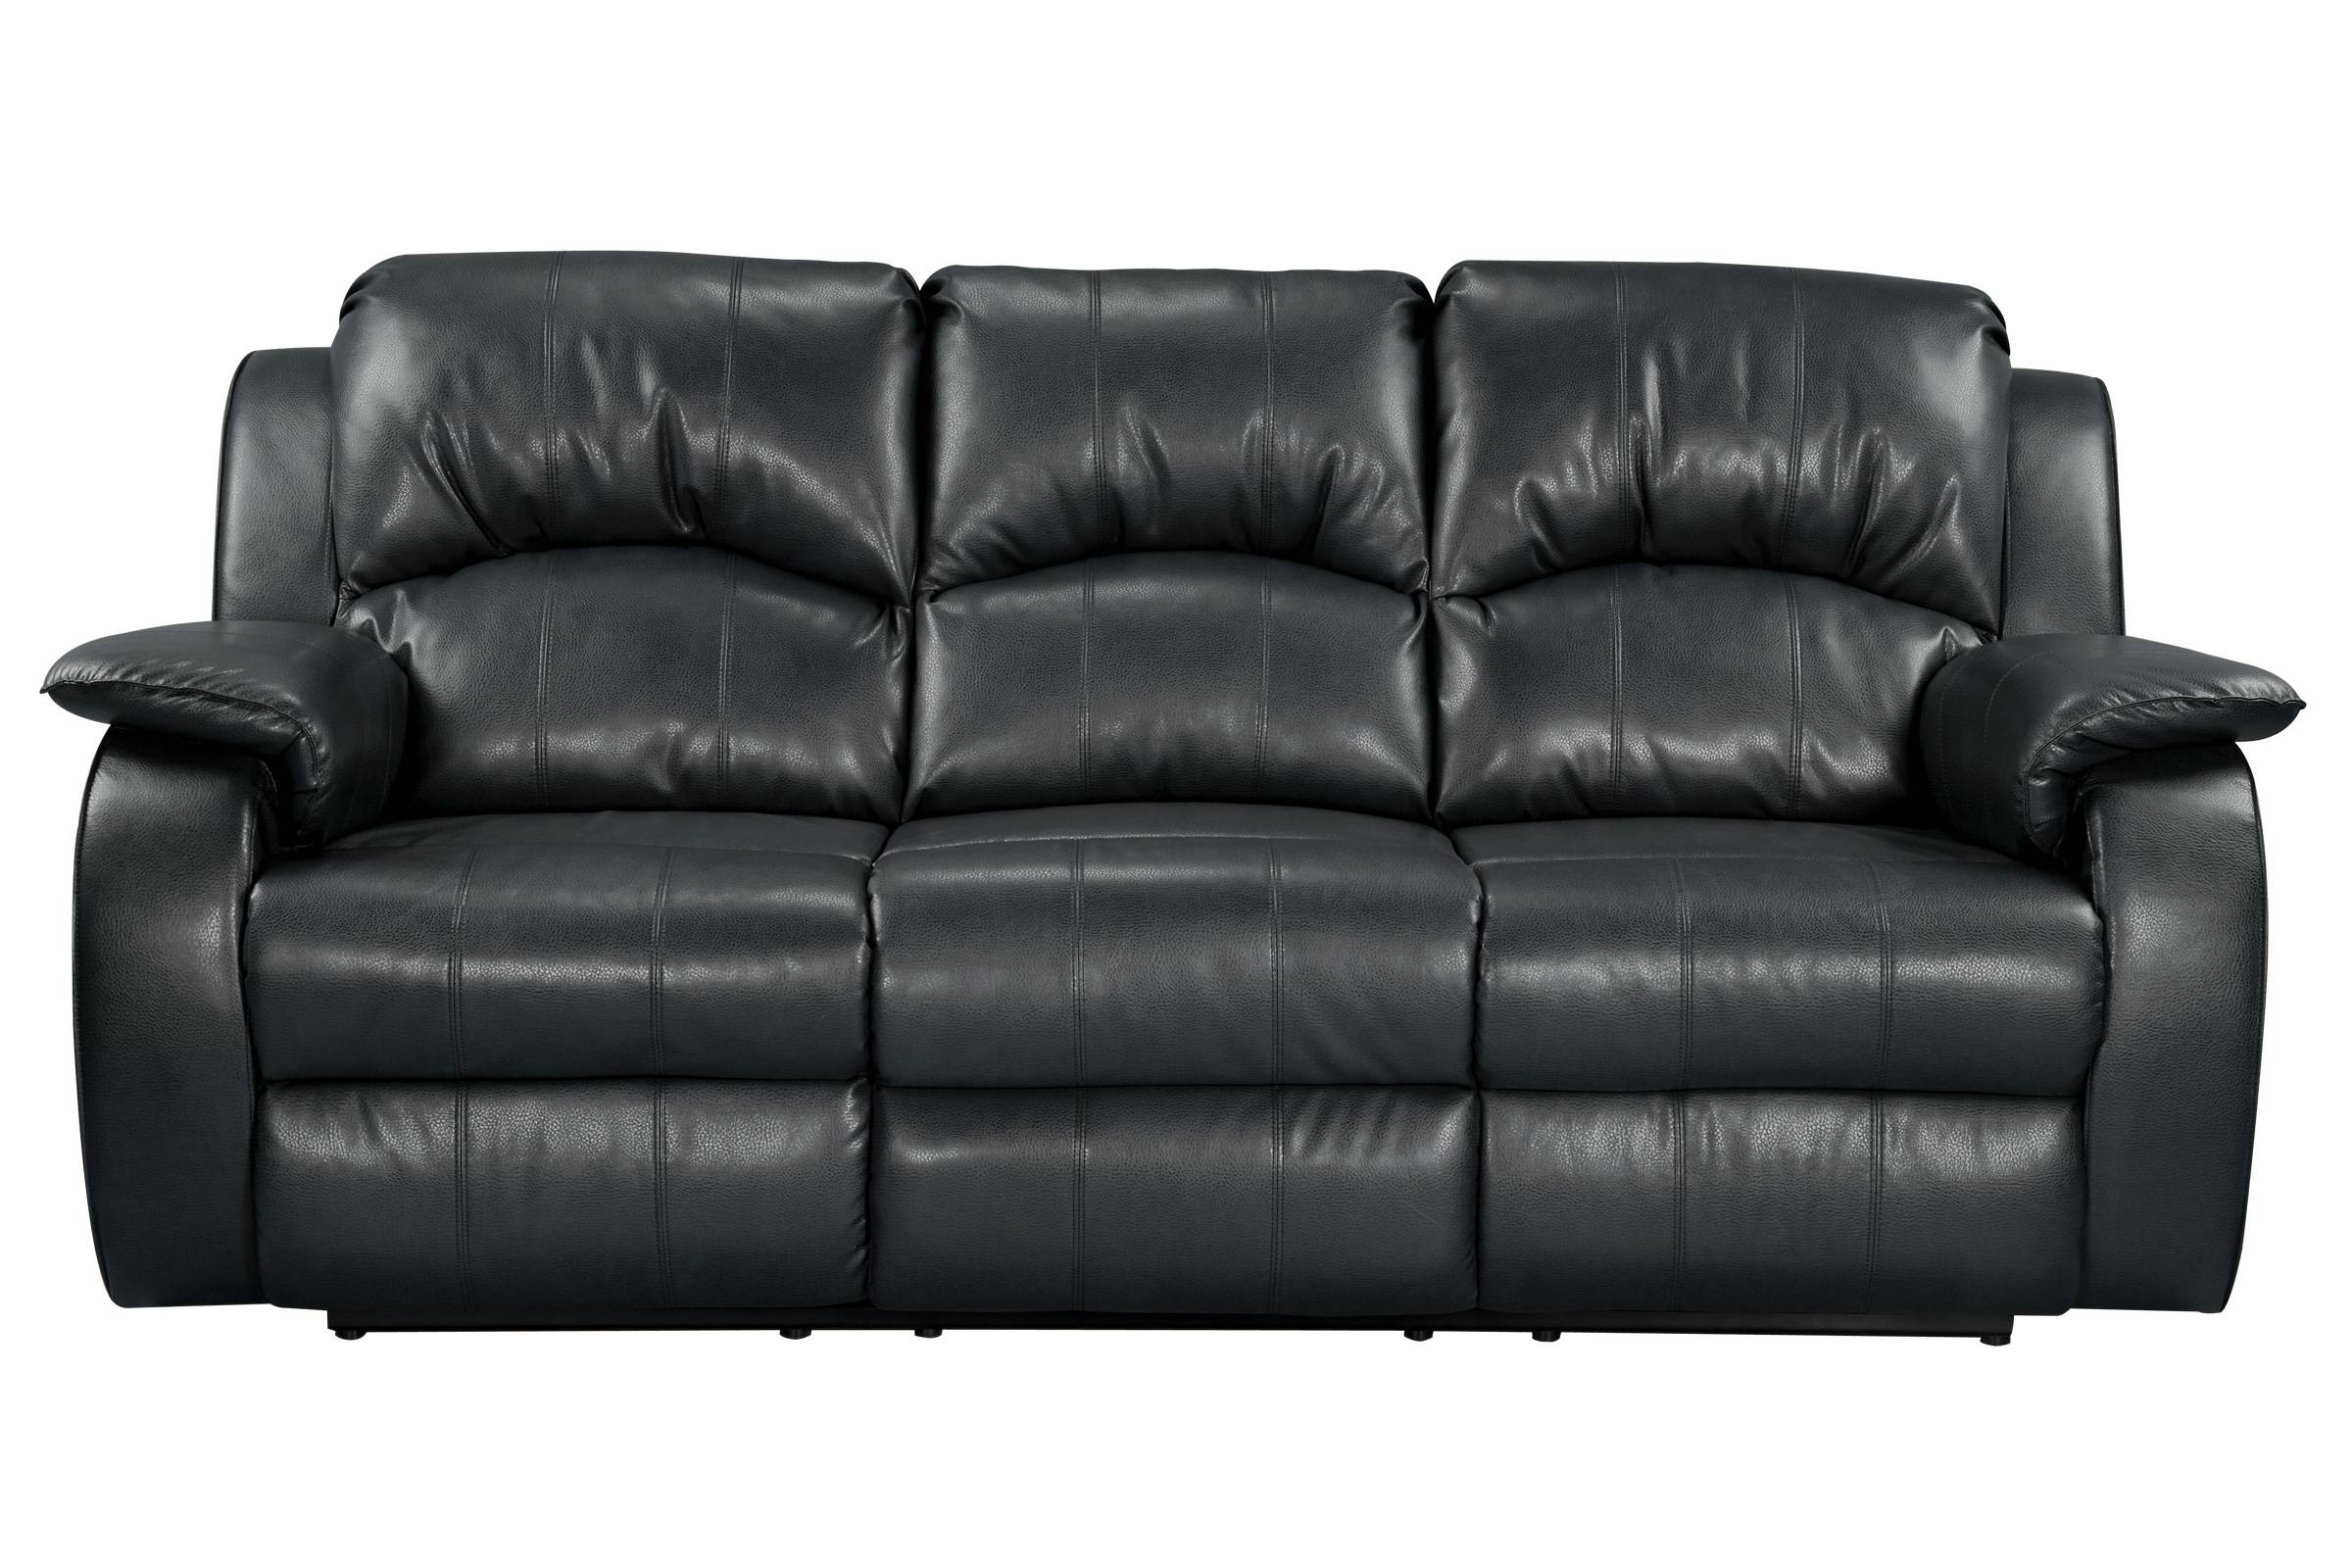 Tahoe Bonded Leather Reclining Sofa within Black And White Sofas (Image 24 of 30)